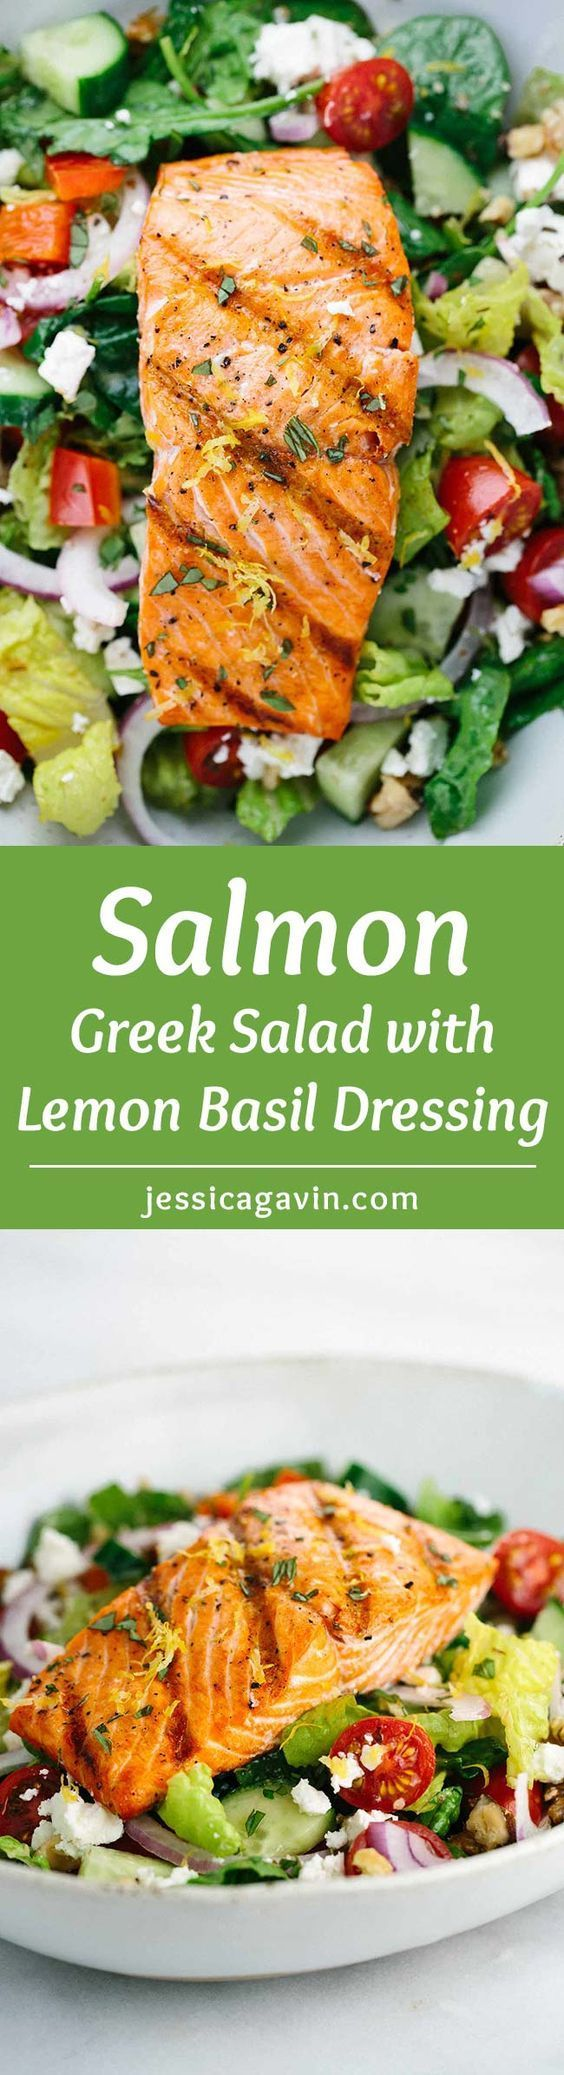 Salmon Greek Salad with Lemon Basil Dressing A light and healthy recipe that tastes amazing! Crisp vegetables are tossed in a tangy lemon basil dressing and topped with flaky salmon.